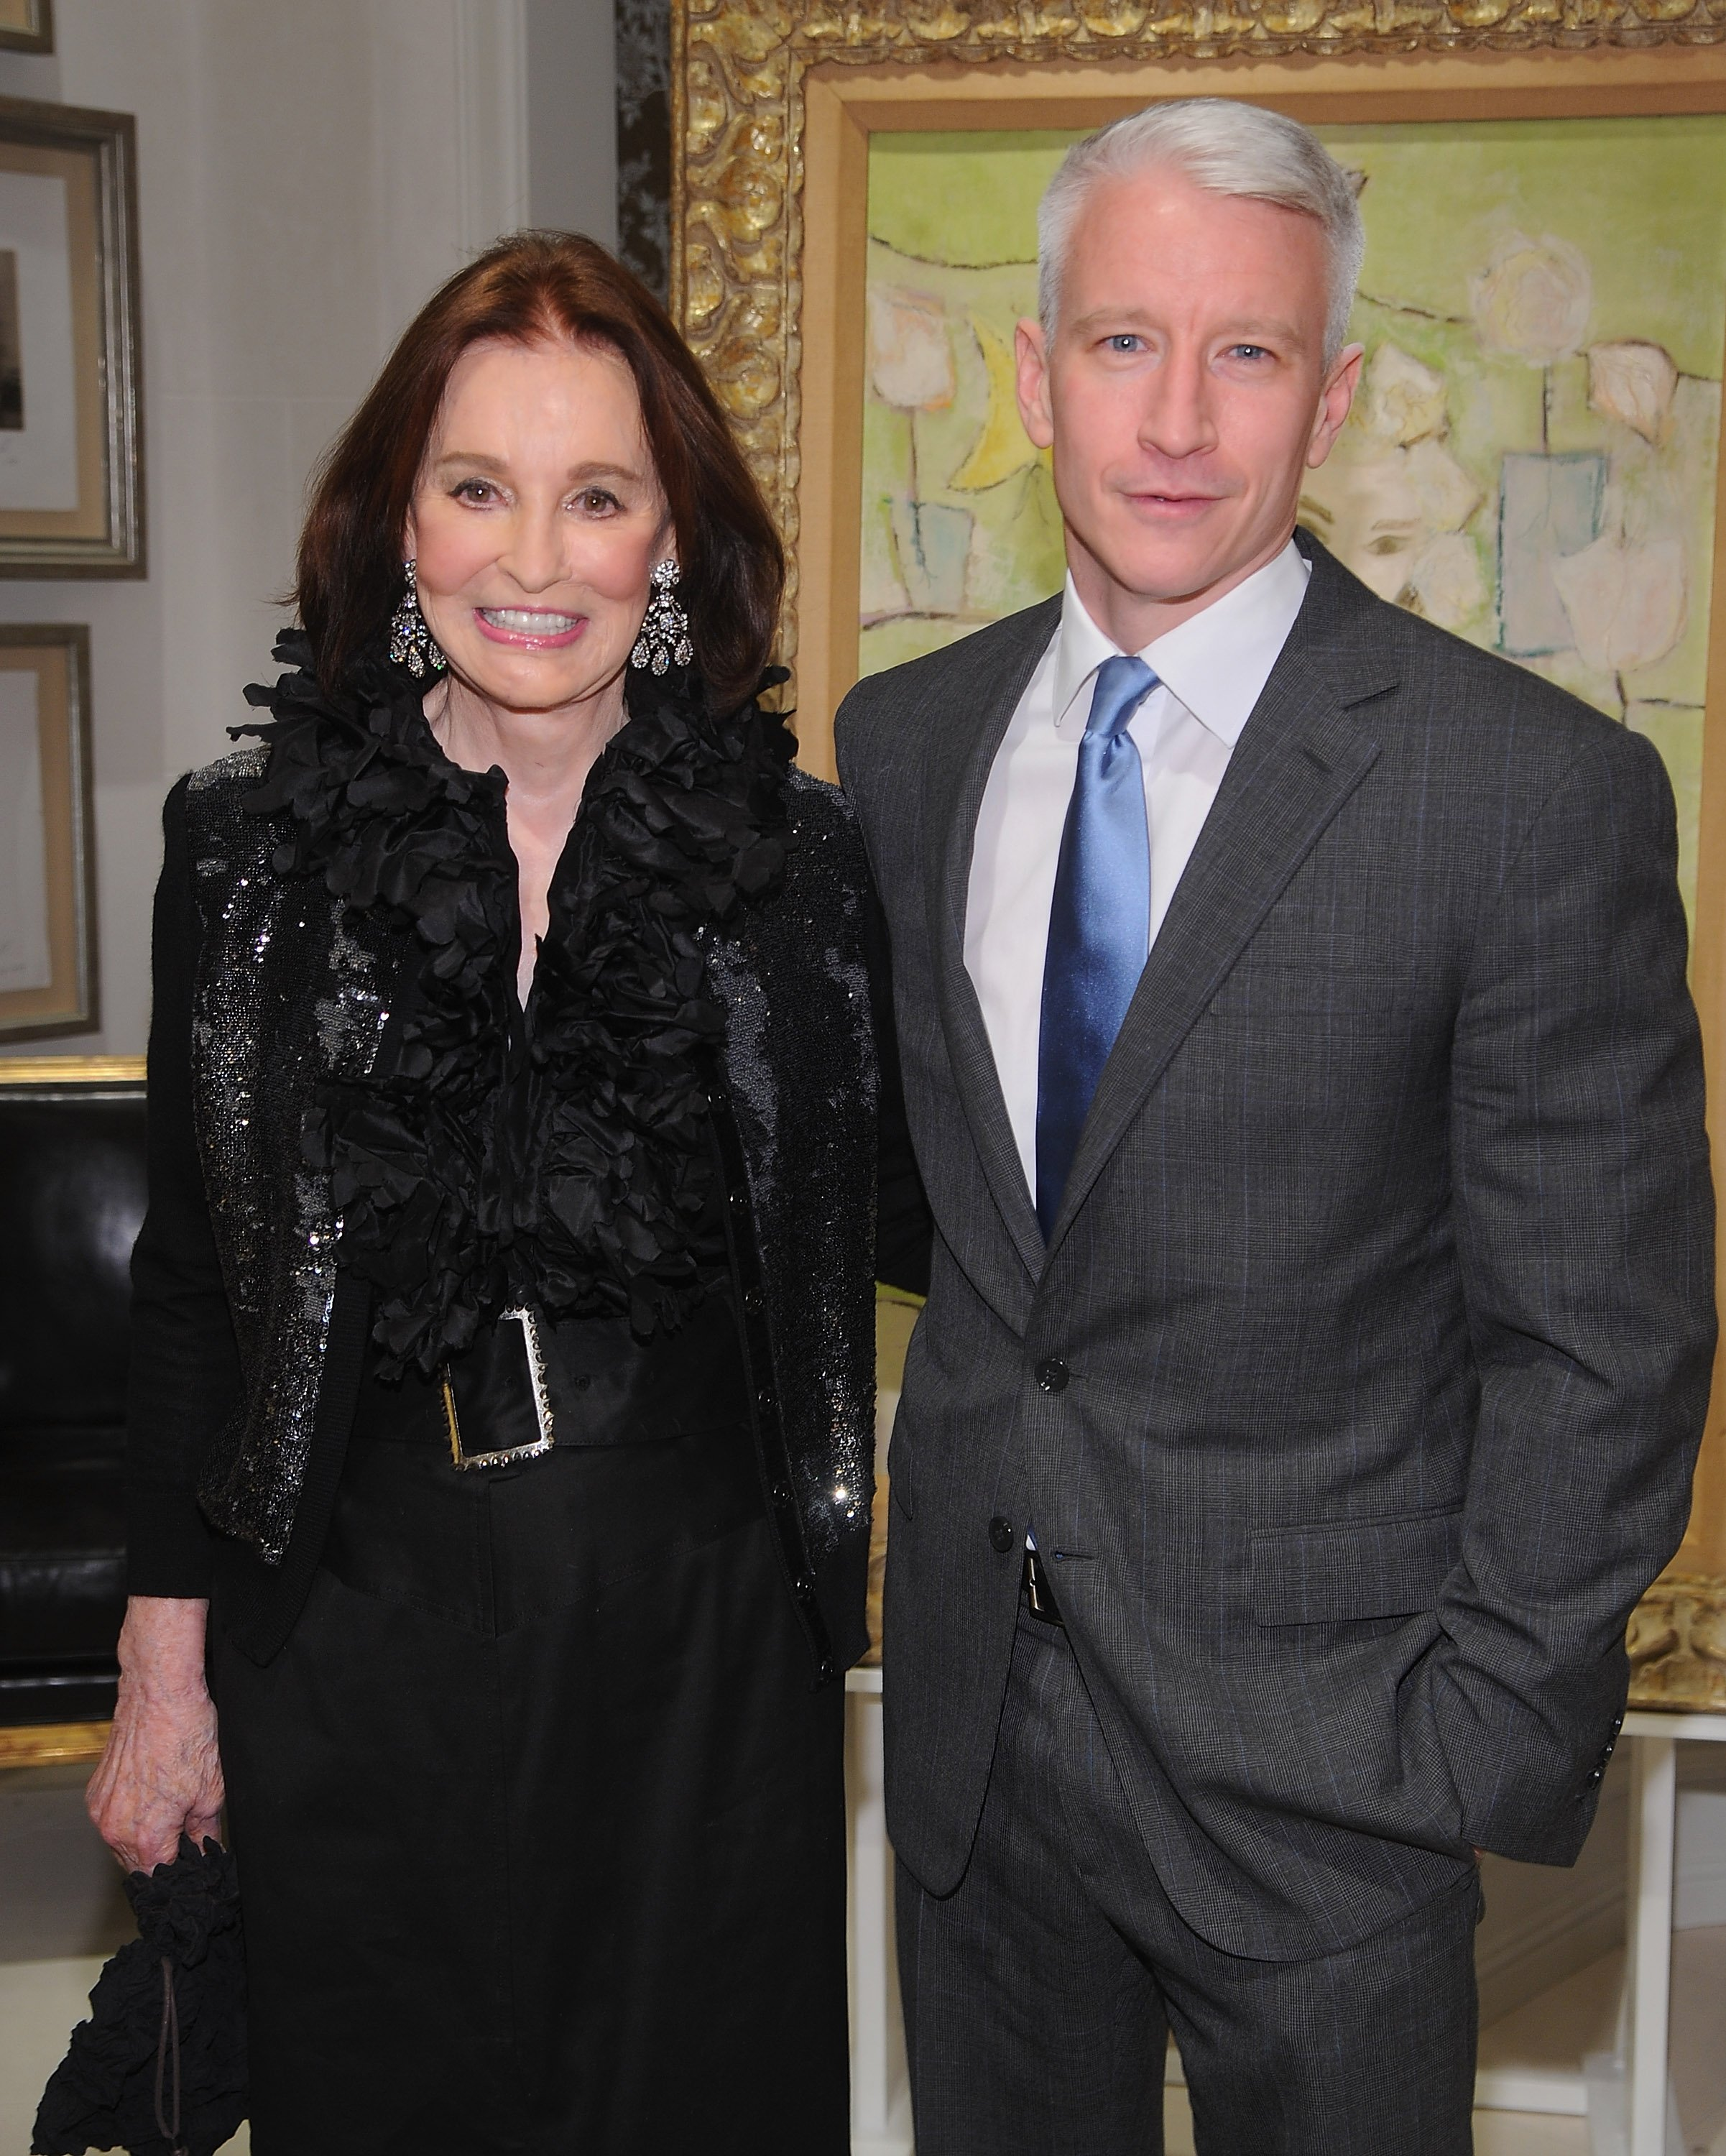 """Gloria Vanderbilt and Anderson Cooper attend the launch party for """"The World Of Gloria Vanderbilt"""" at the Ralph Lauren Women's Boutique on November 4, 2010 in New York City   Photo: Getty Images"""